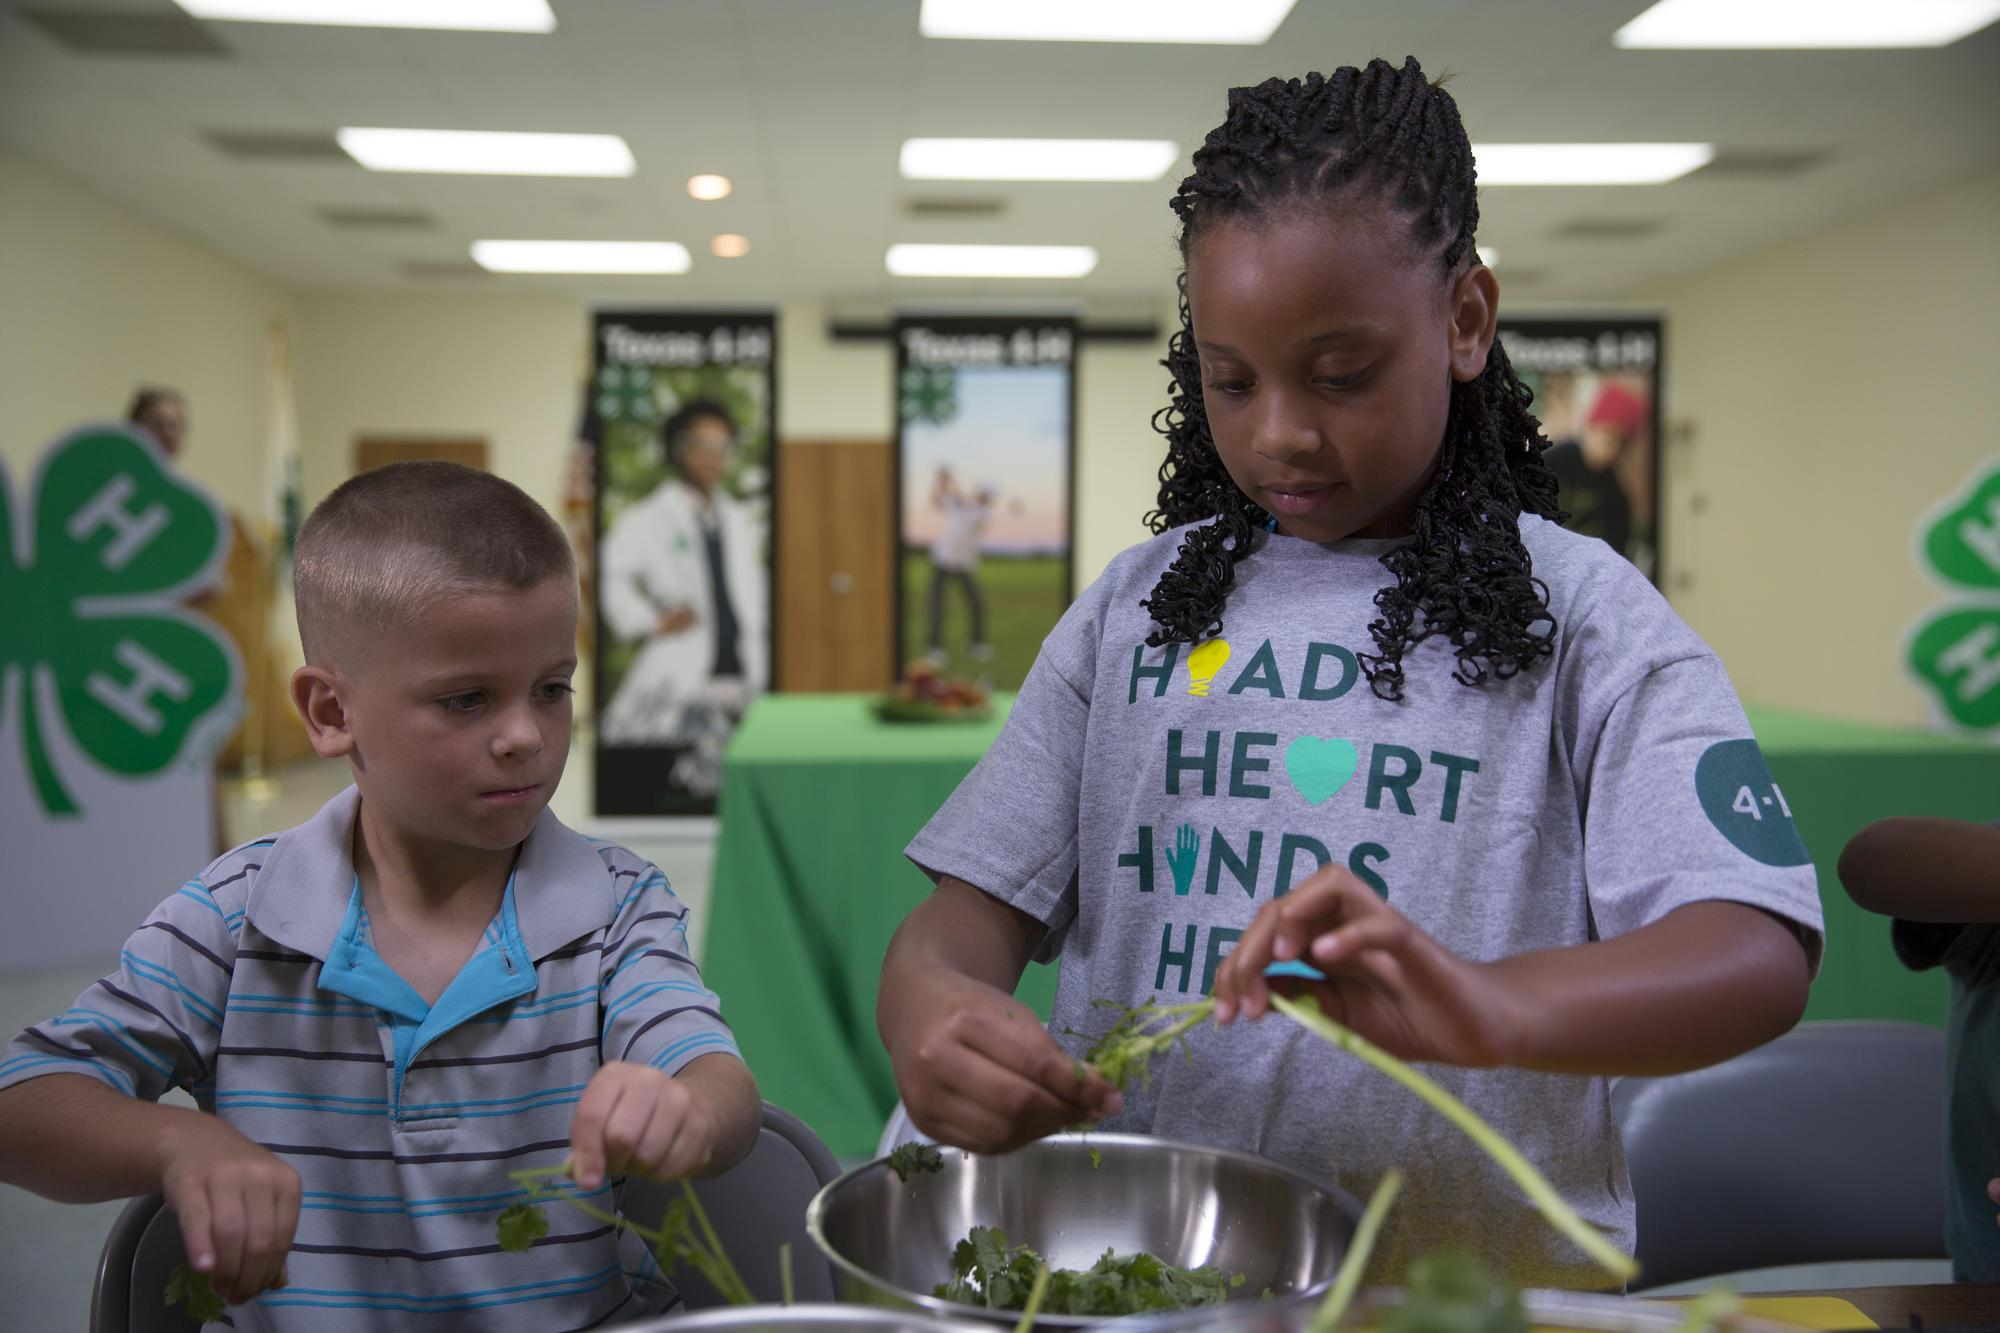 4-H kids cleaning vegetables